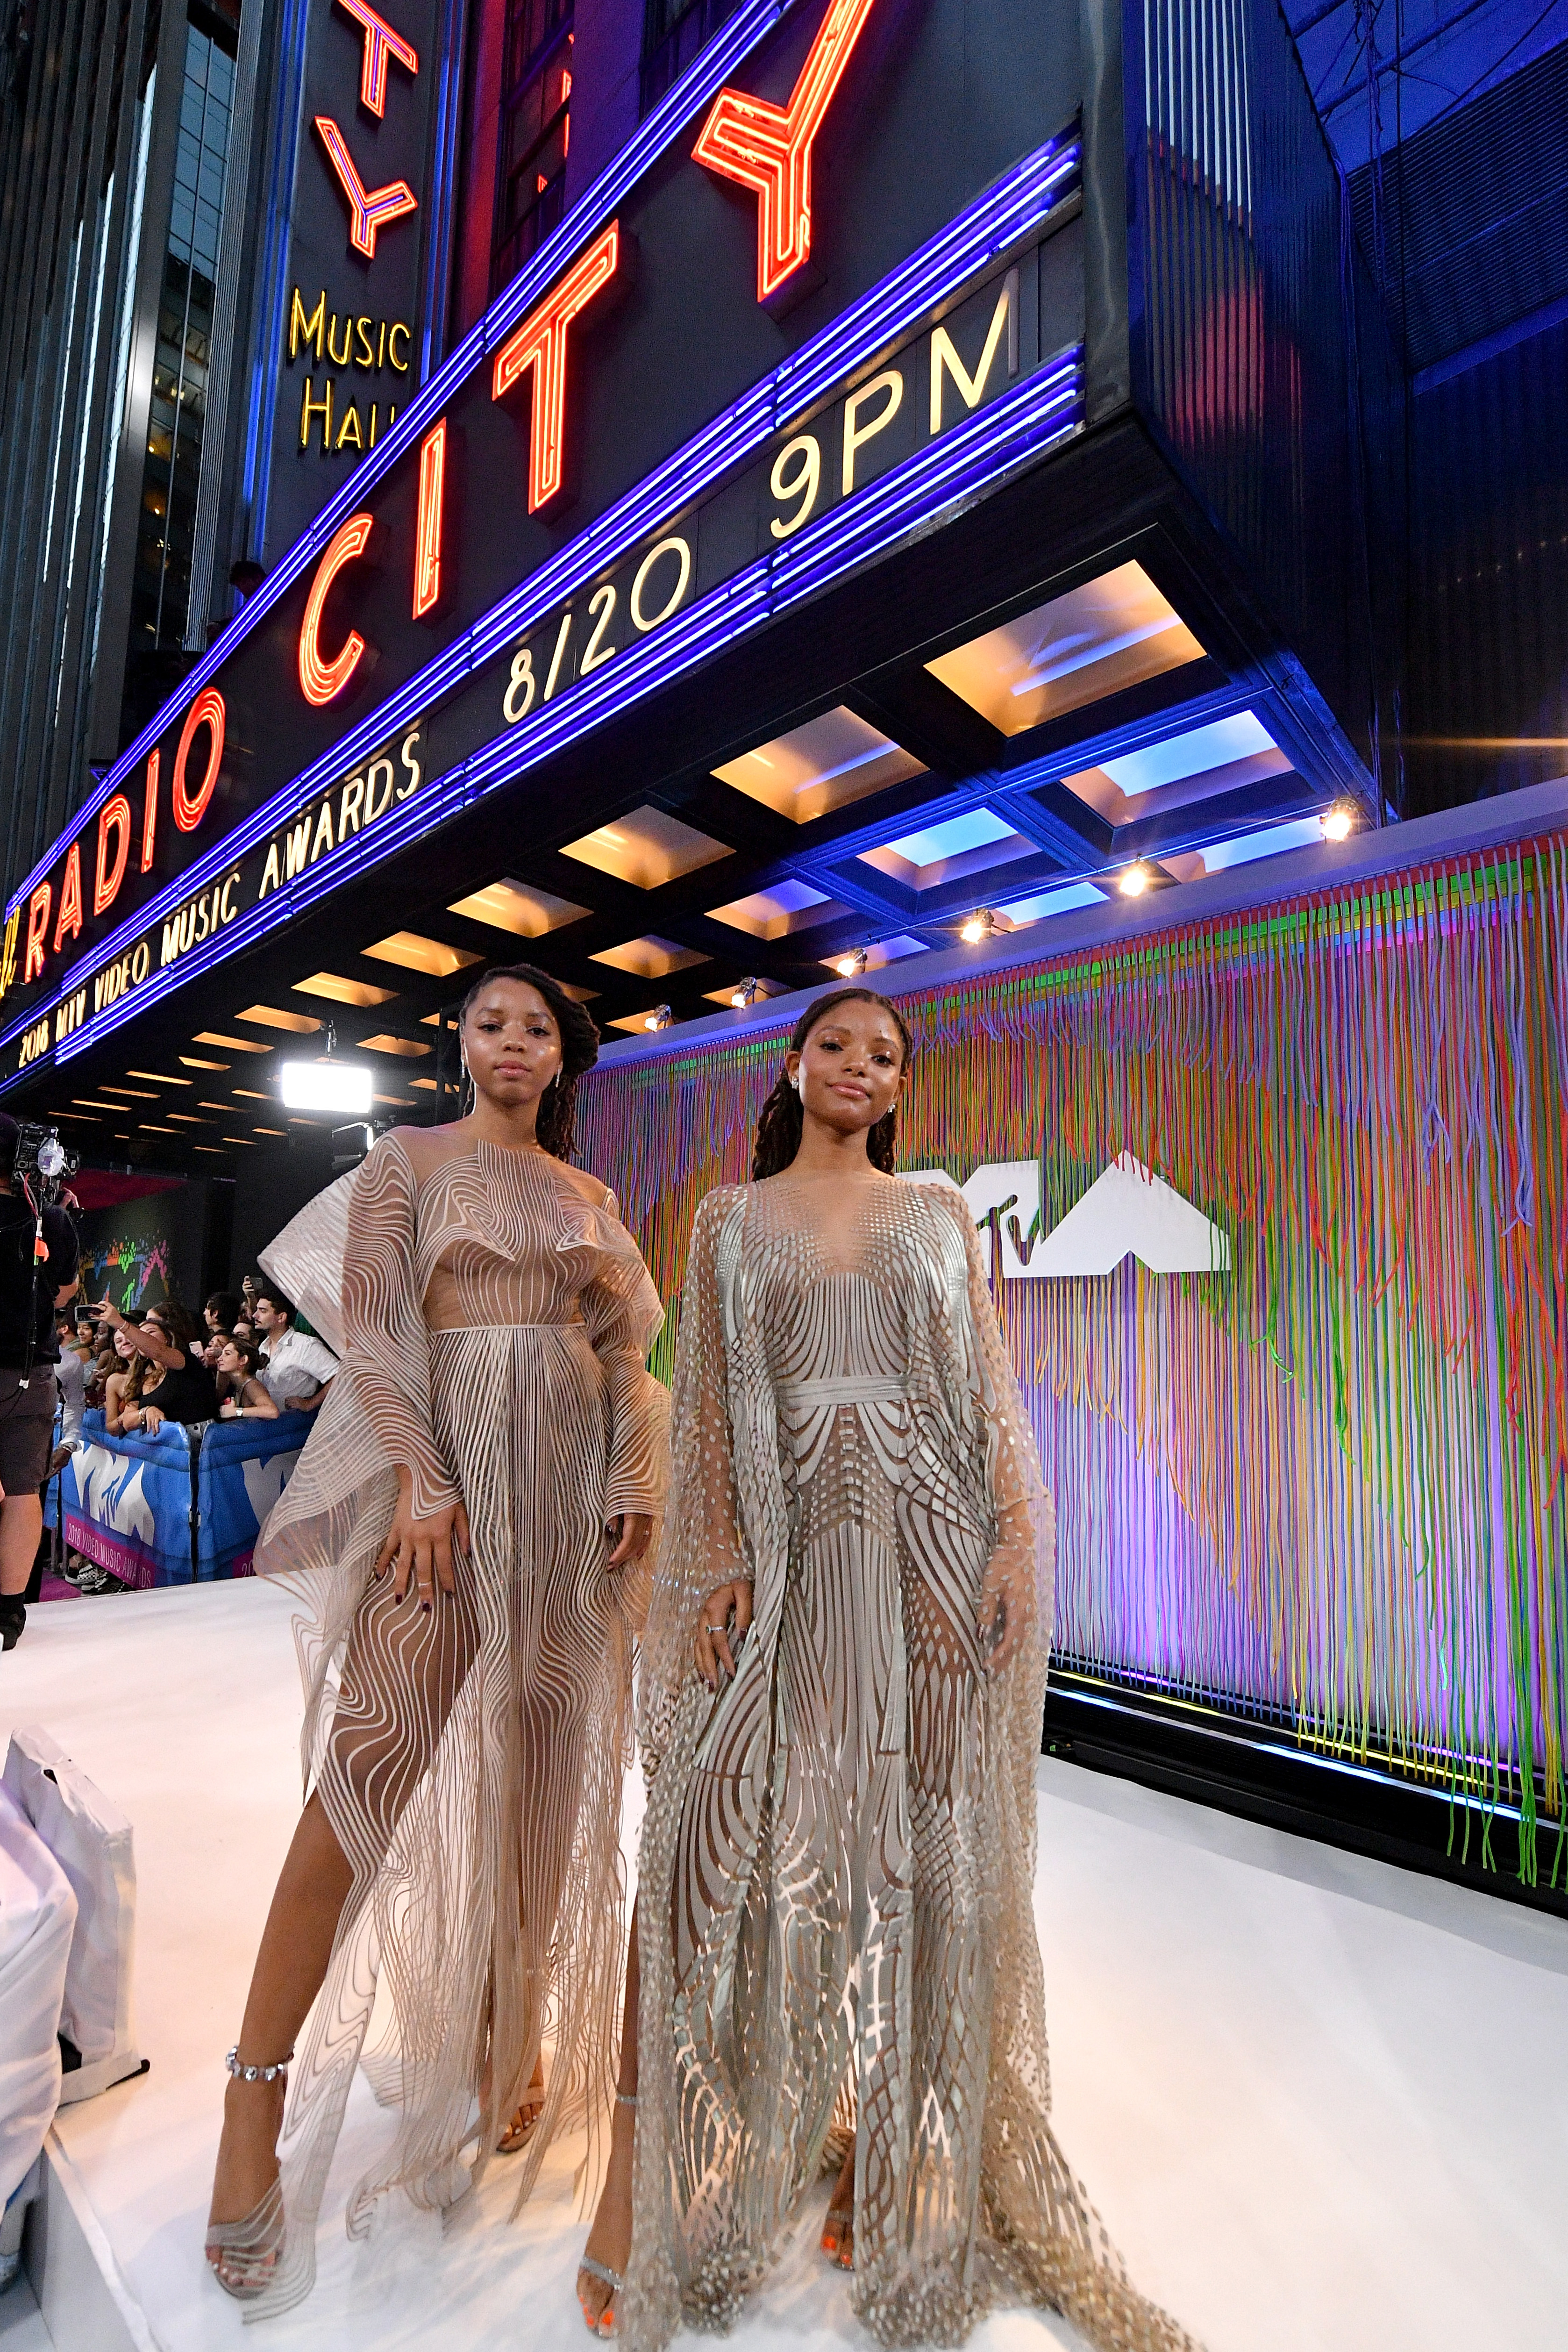 Chloe X Halle attend the 2018 MTV Video Music Awards at Radio City Music Hall on August 20, 2018 in New York City.